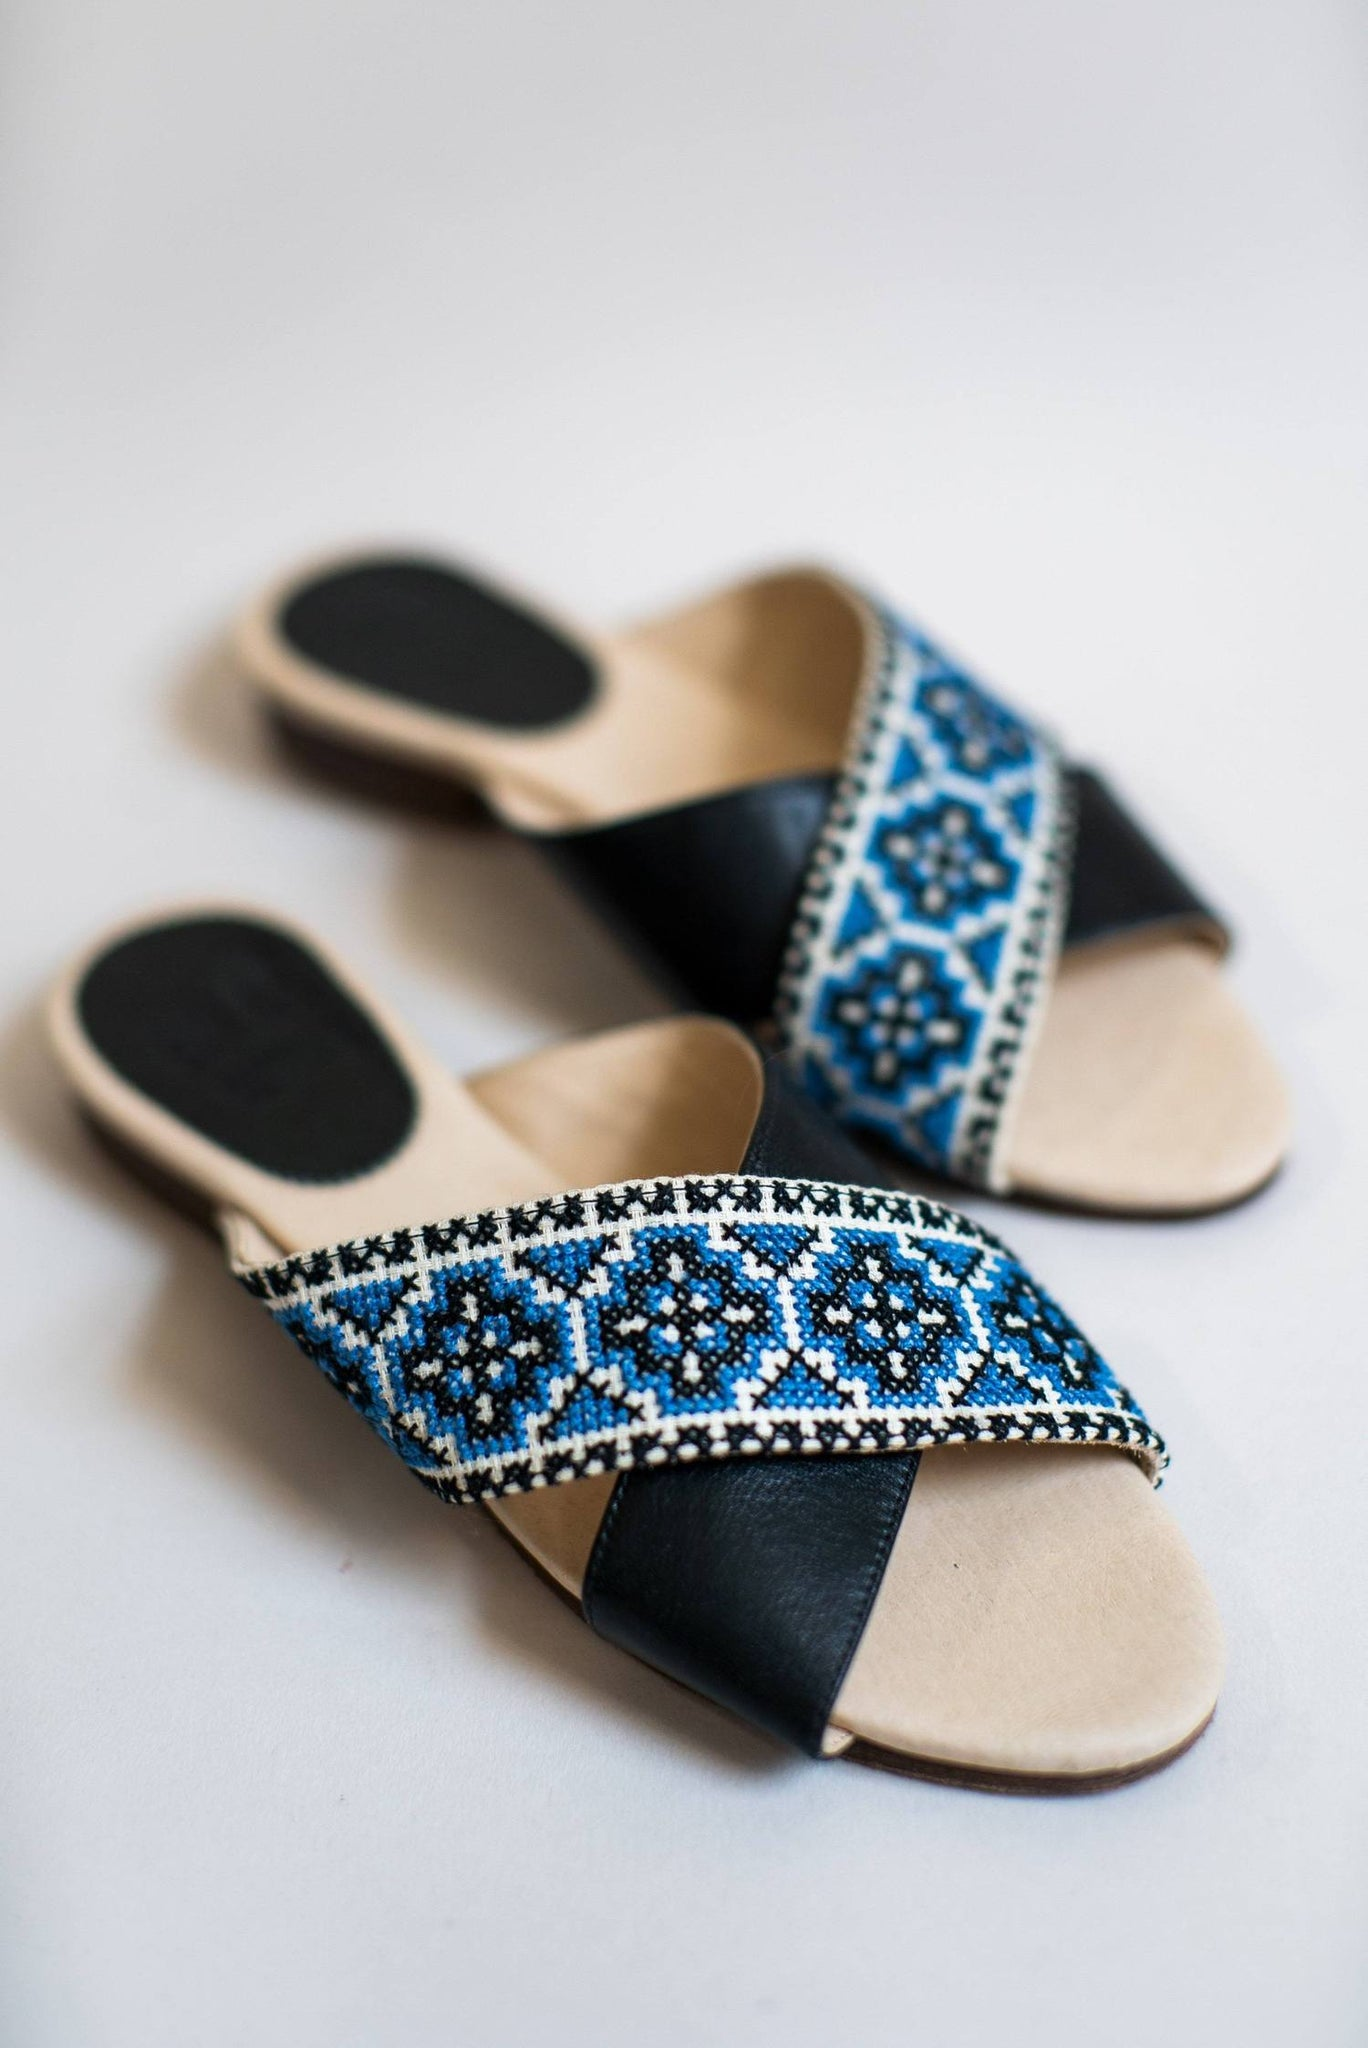 Fair Trade sandals from Darzah